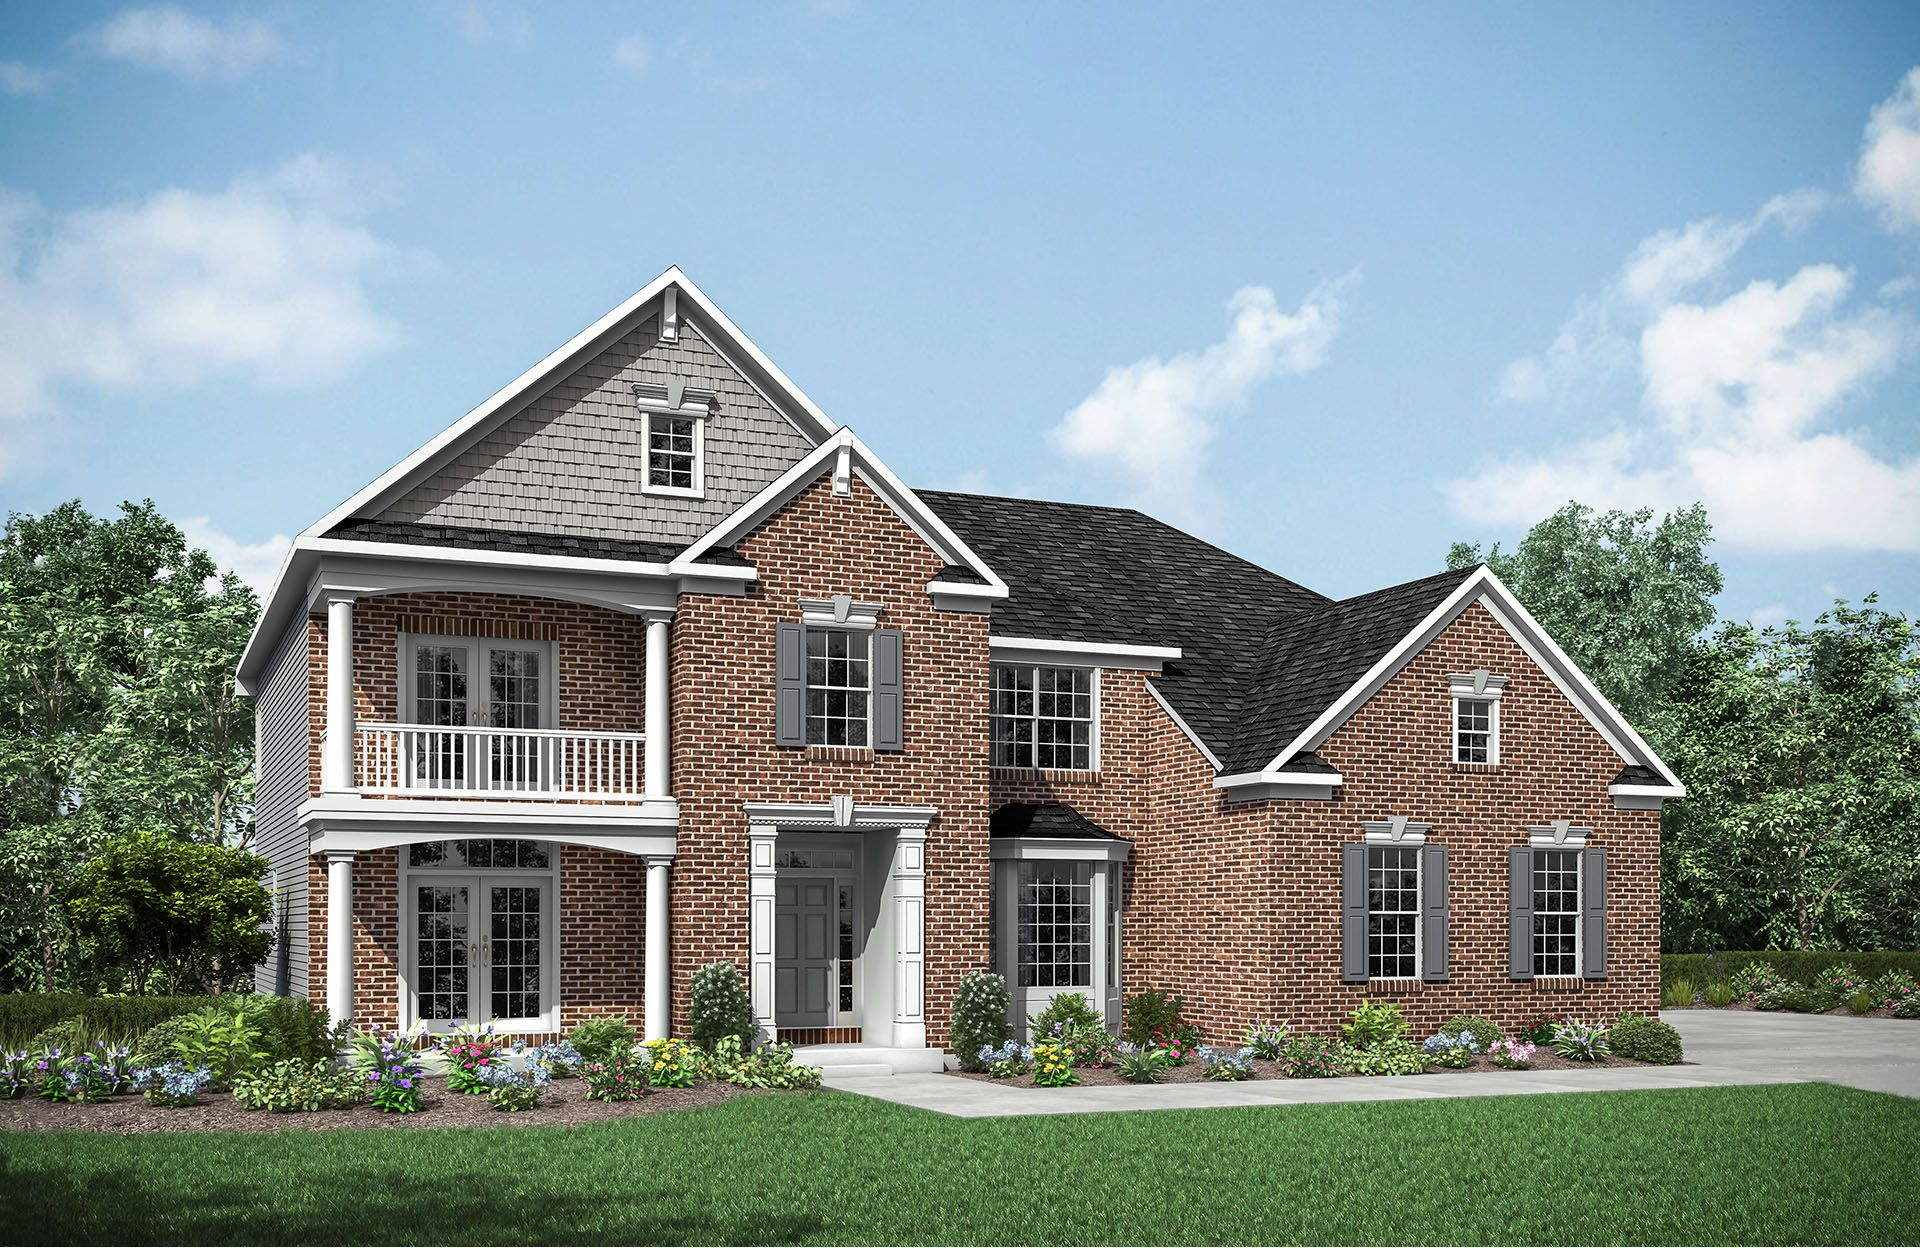 Single Family for Sale at Triple Crown - Langdon 3996 Aria Ct Union, Kentucky 41091 United States